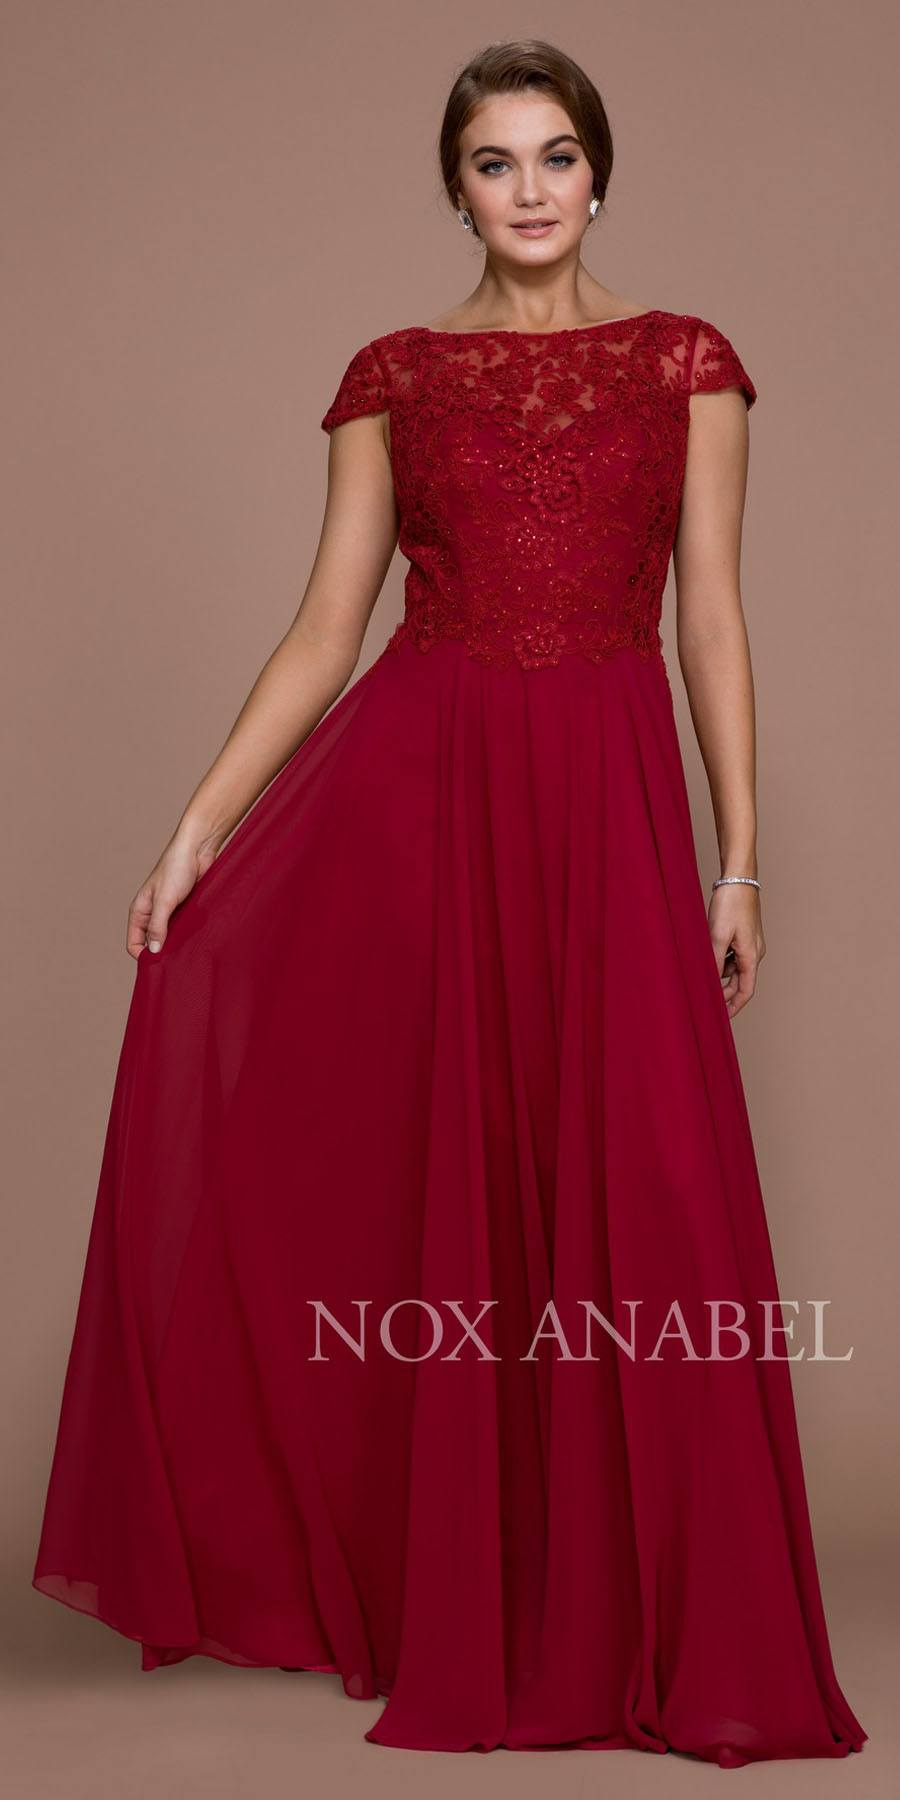 68ebbdeda8f Cap Sleeve A-Line Long Formal Dress Lace Bodice Burgundy. Tap to expand